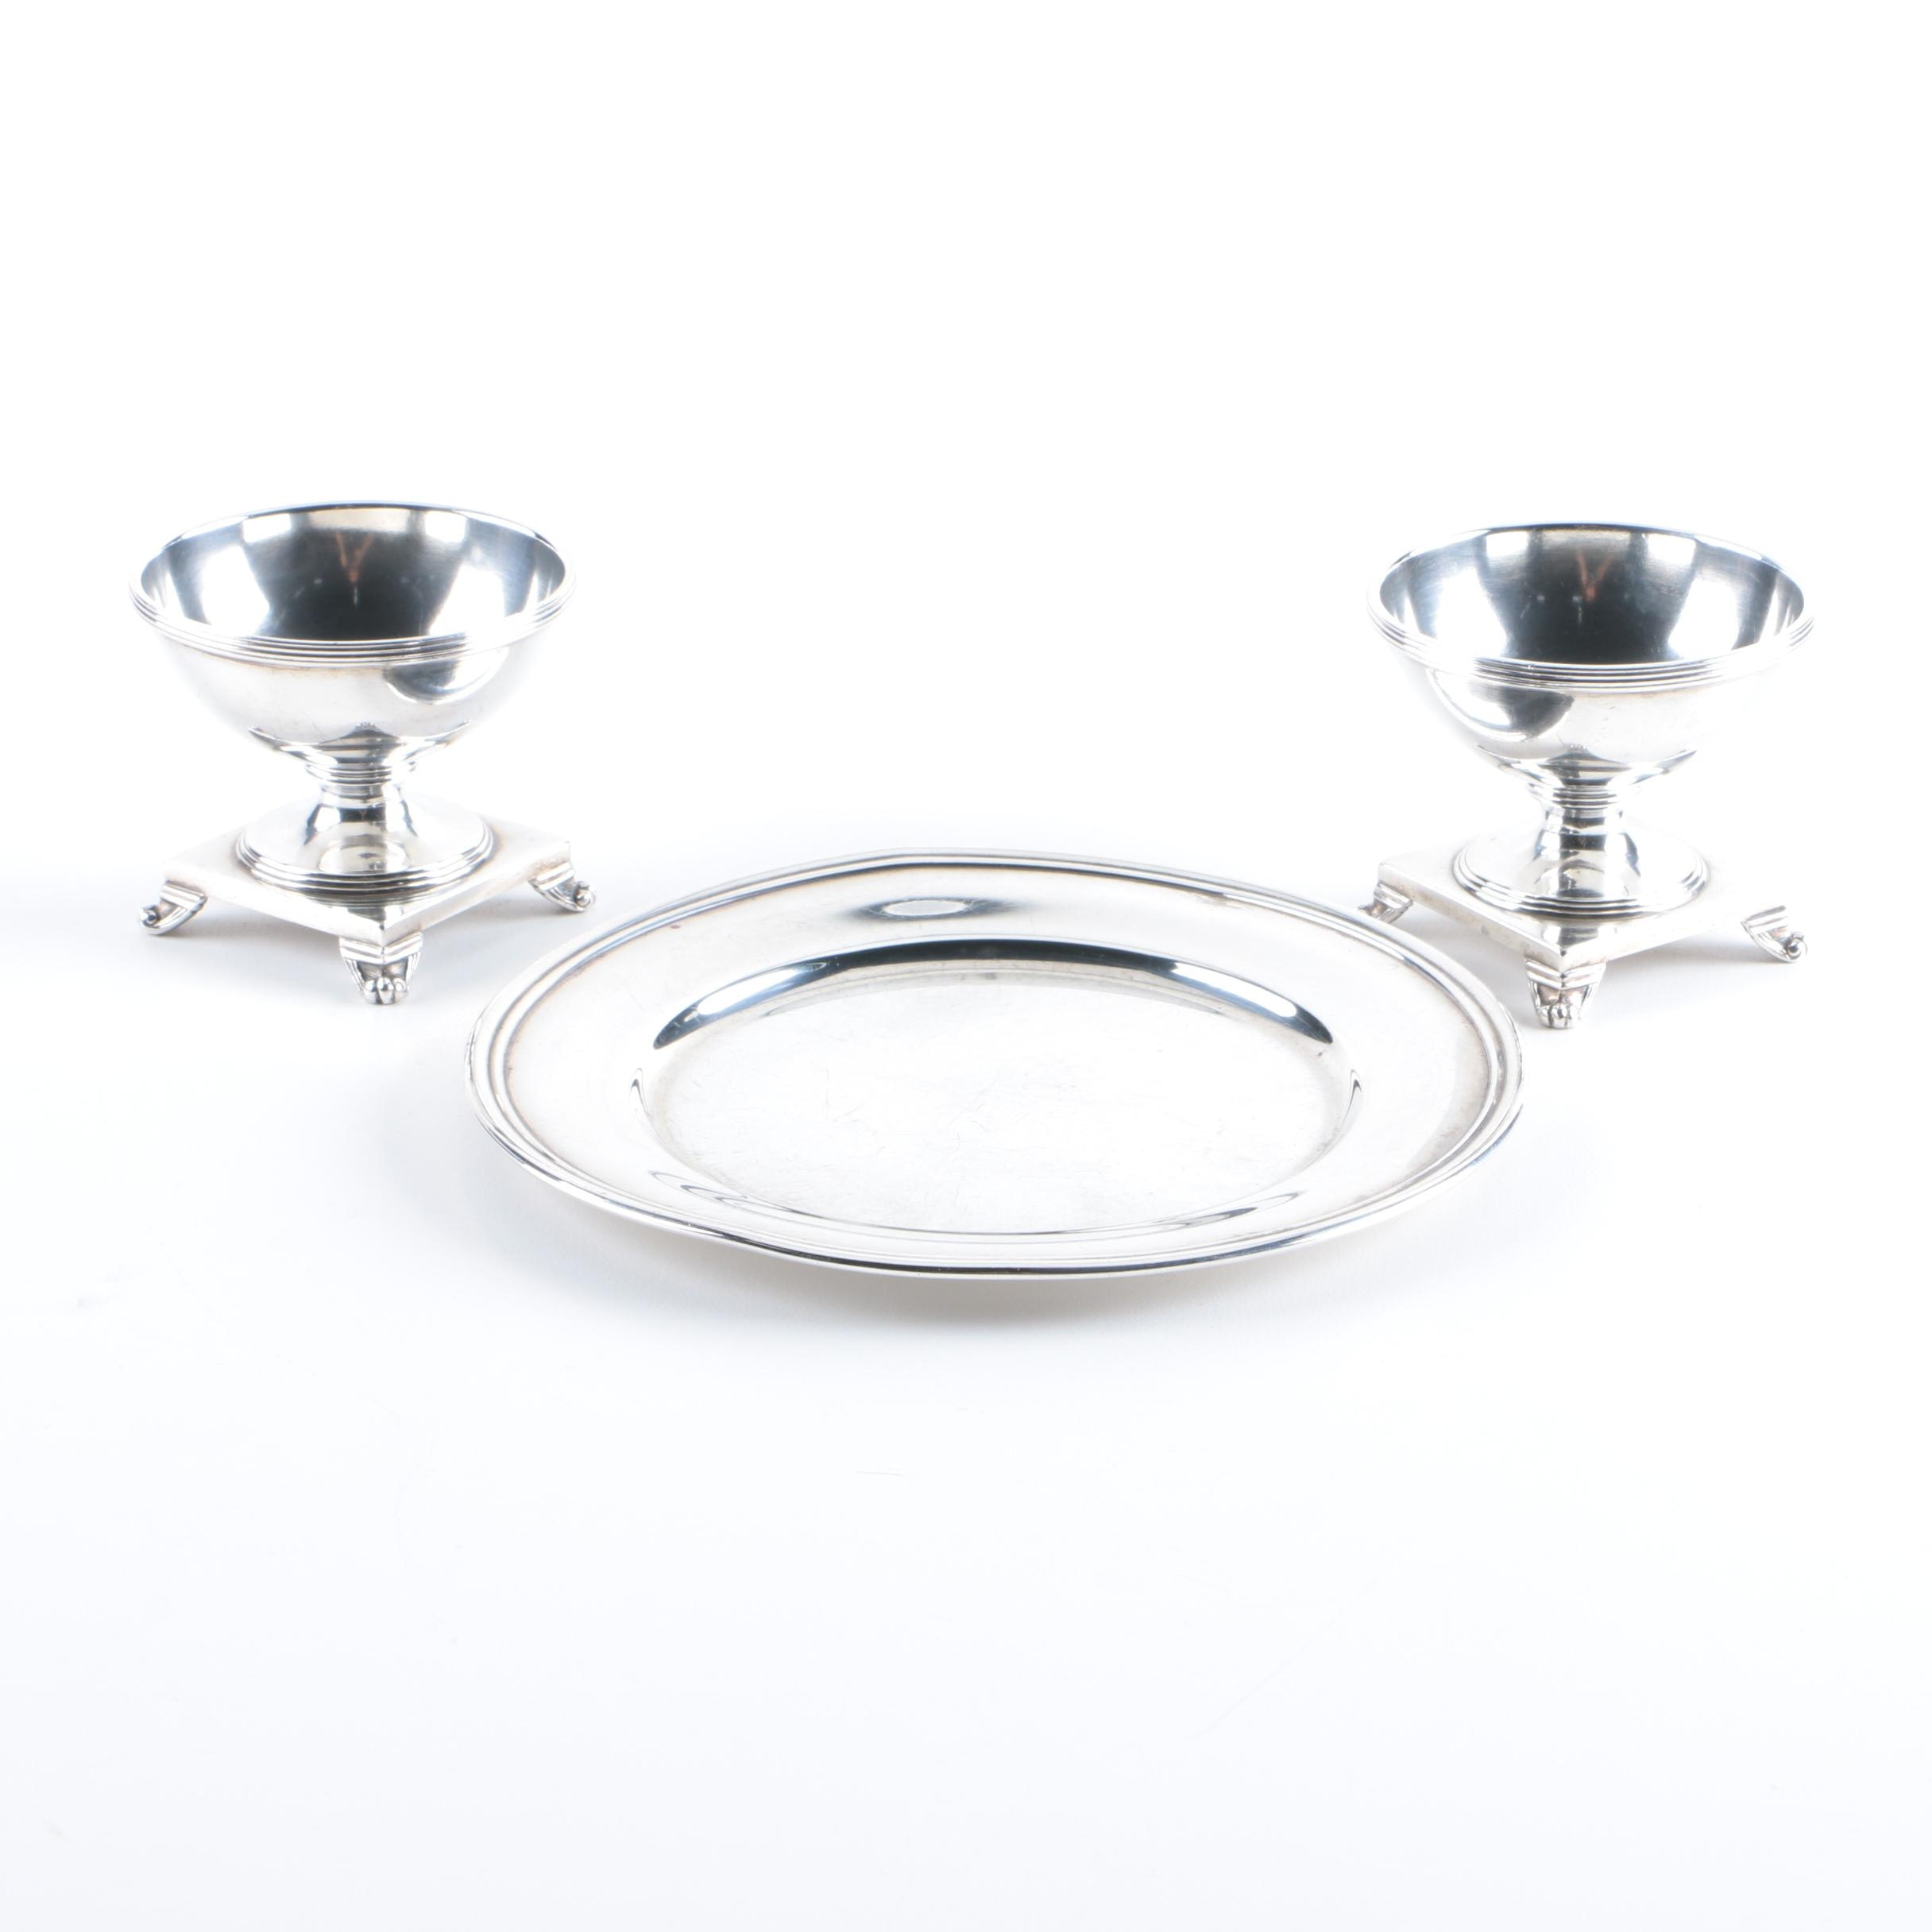 S. Kirk & Son Sterling Silver Footed Egg Cups and Dish